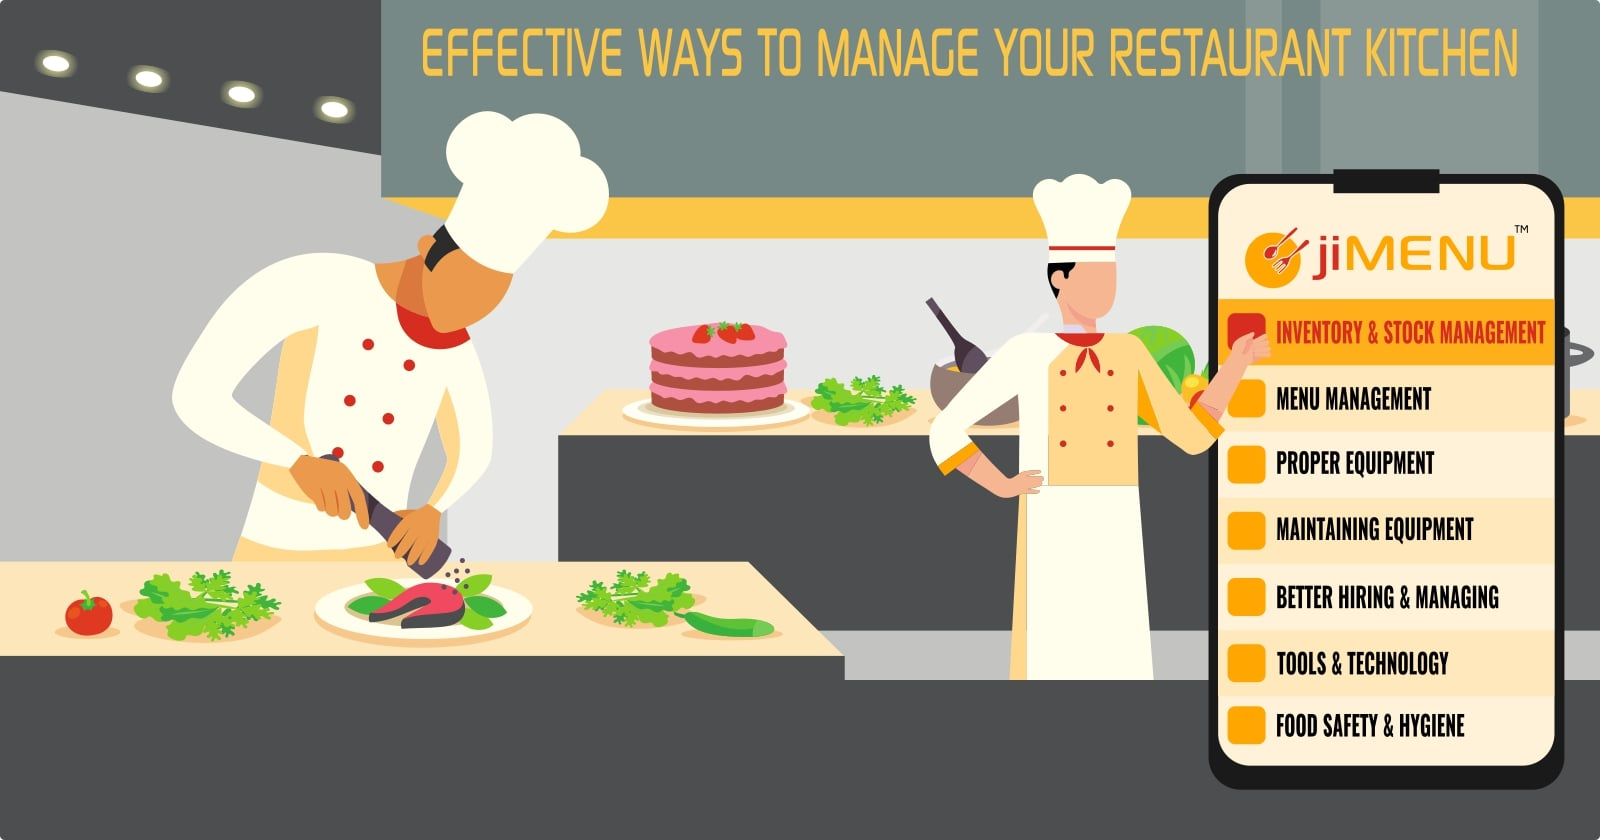 Kitchen Management: The Best Ways to Manage Your Restaurant Kitchen